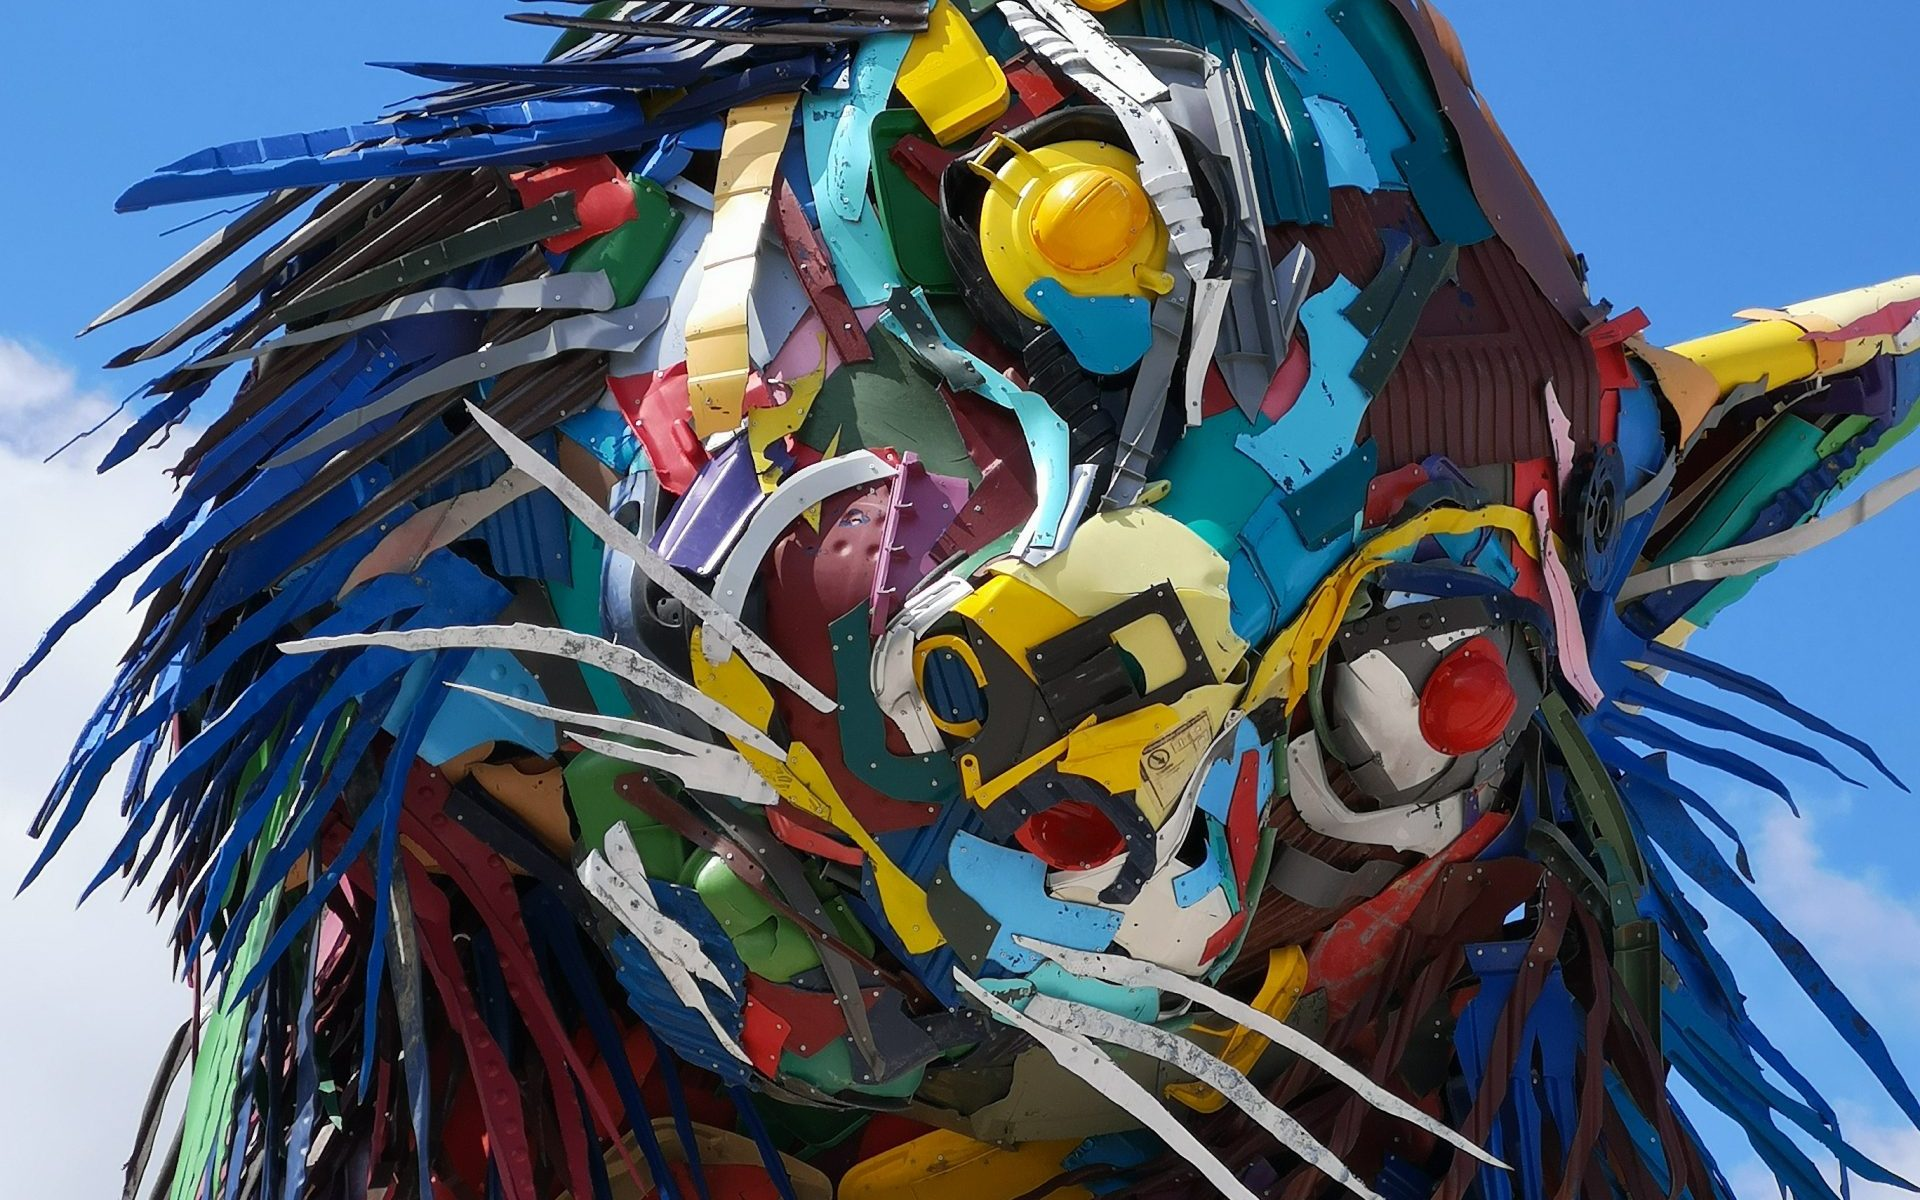 JUST HEAD OF iBERIAN lYNX IN PLASTIC MATERIAL FROM BORDALO II ARTIST AND ACTIVIST